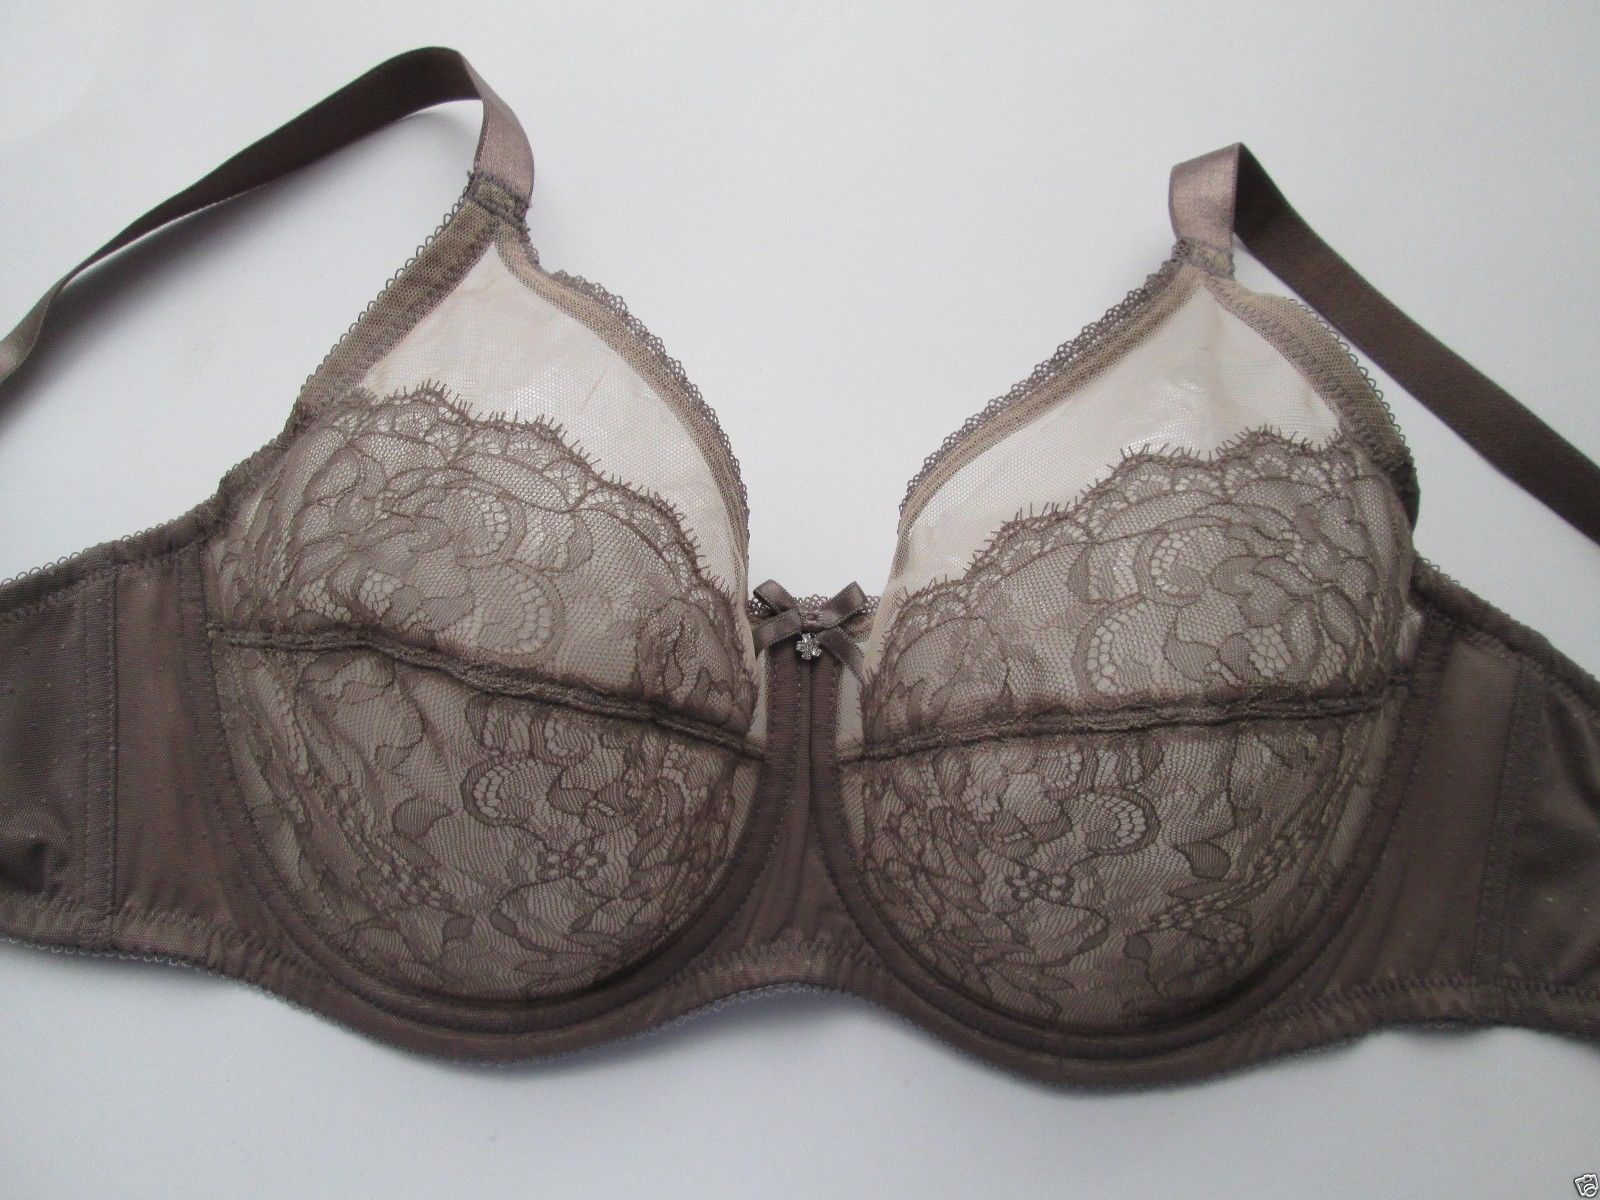 Wacoal 855186 Retro Chic Full Coverage Underwire Bra Brown 38D UPC89BAG214  - $28.21